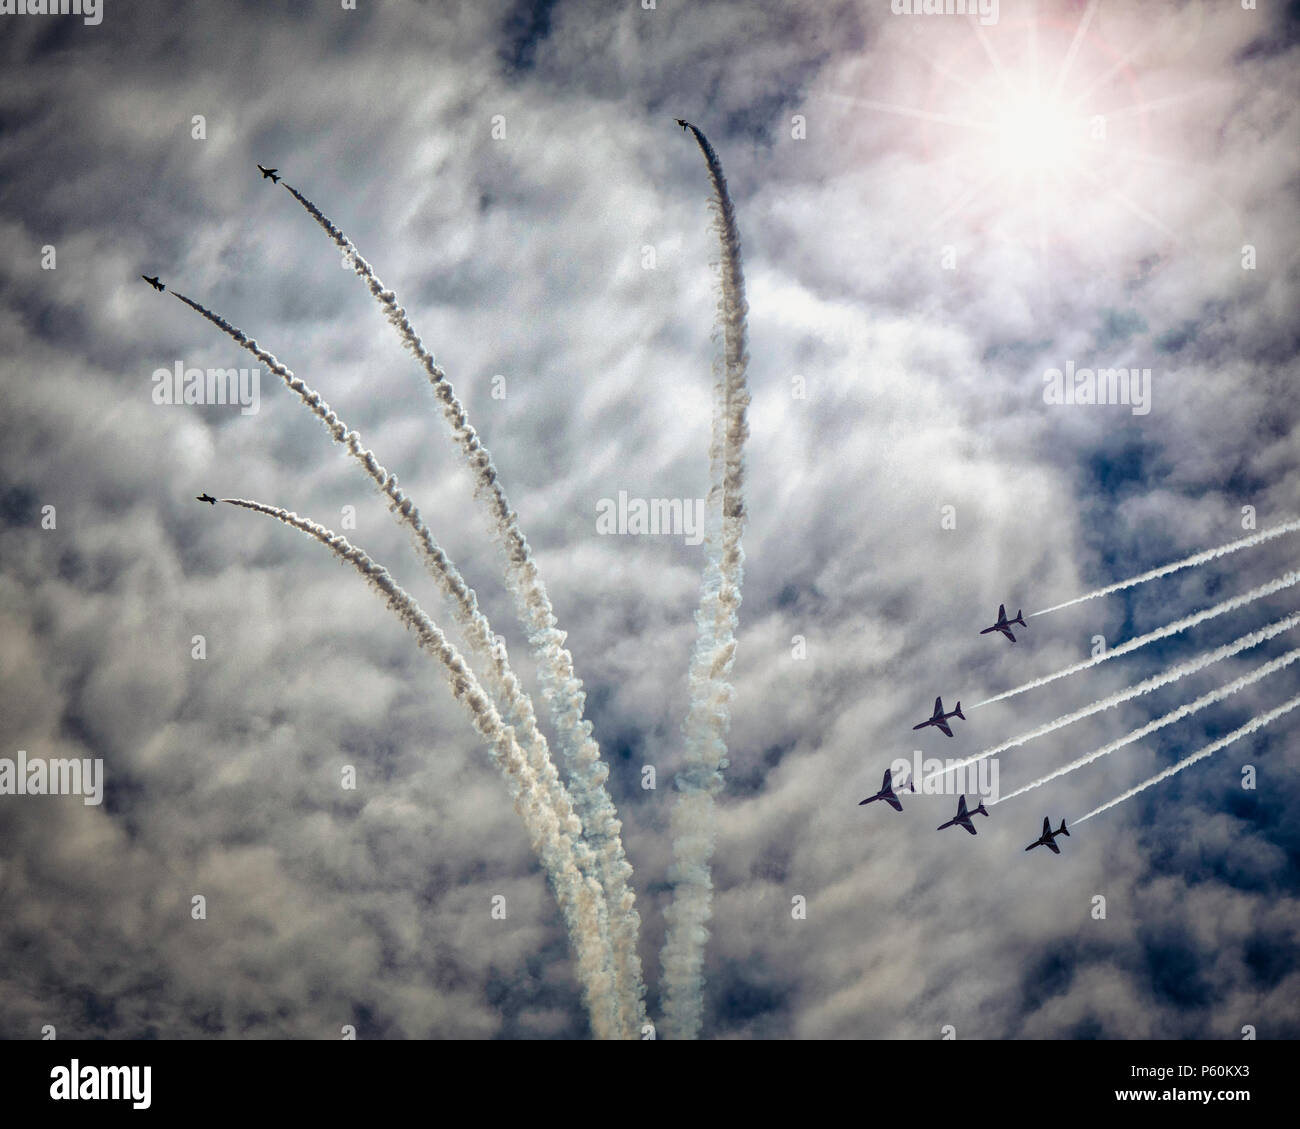 GREAT BRITAIN: The Royal Air Force Aerobatic Team - Stock Image